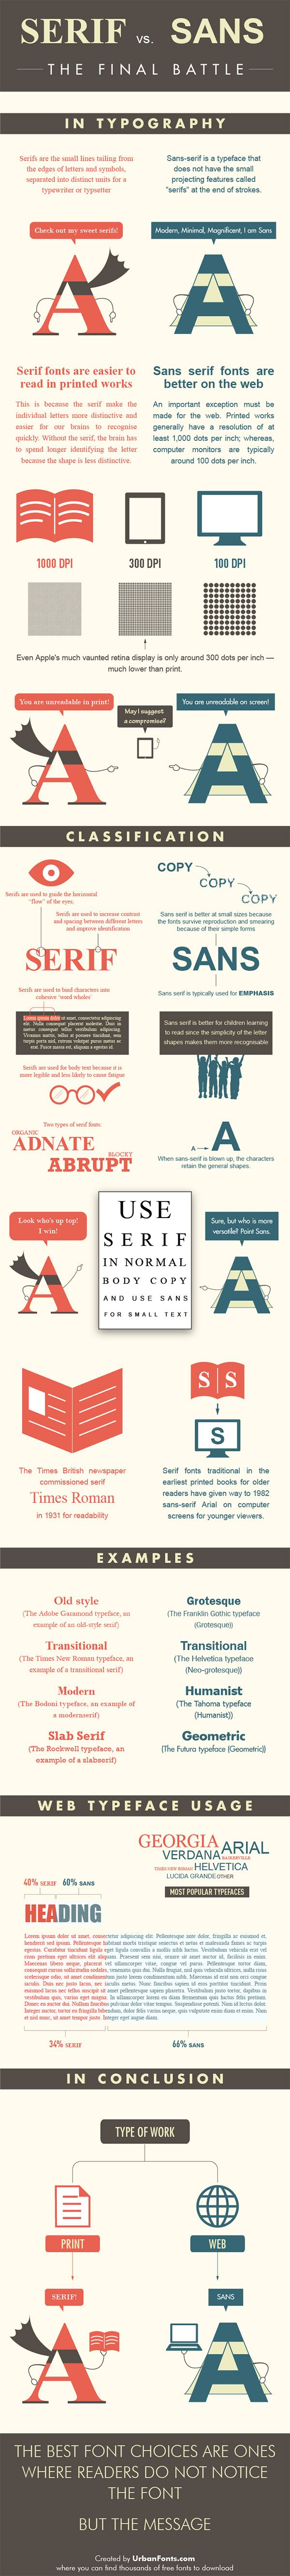 serif – sans serf, the final battle